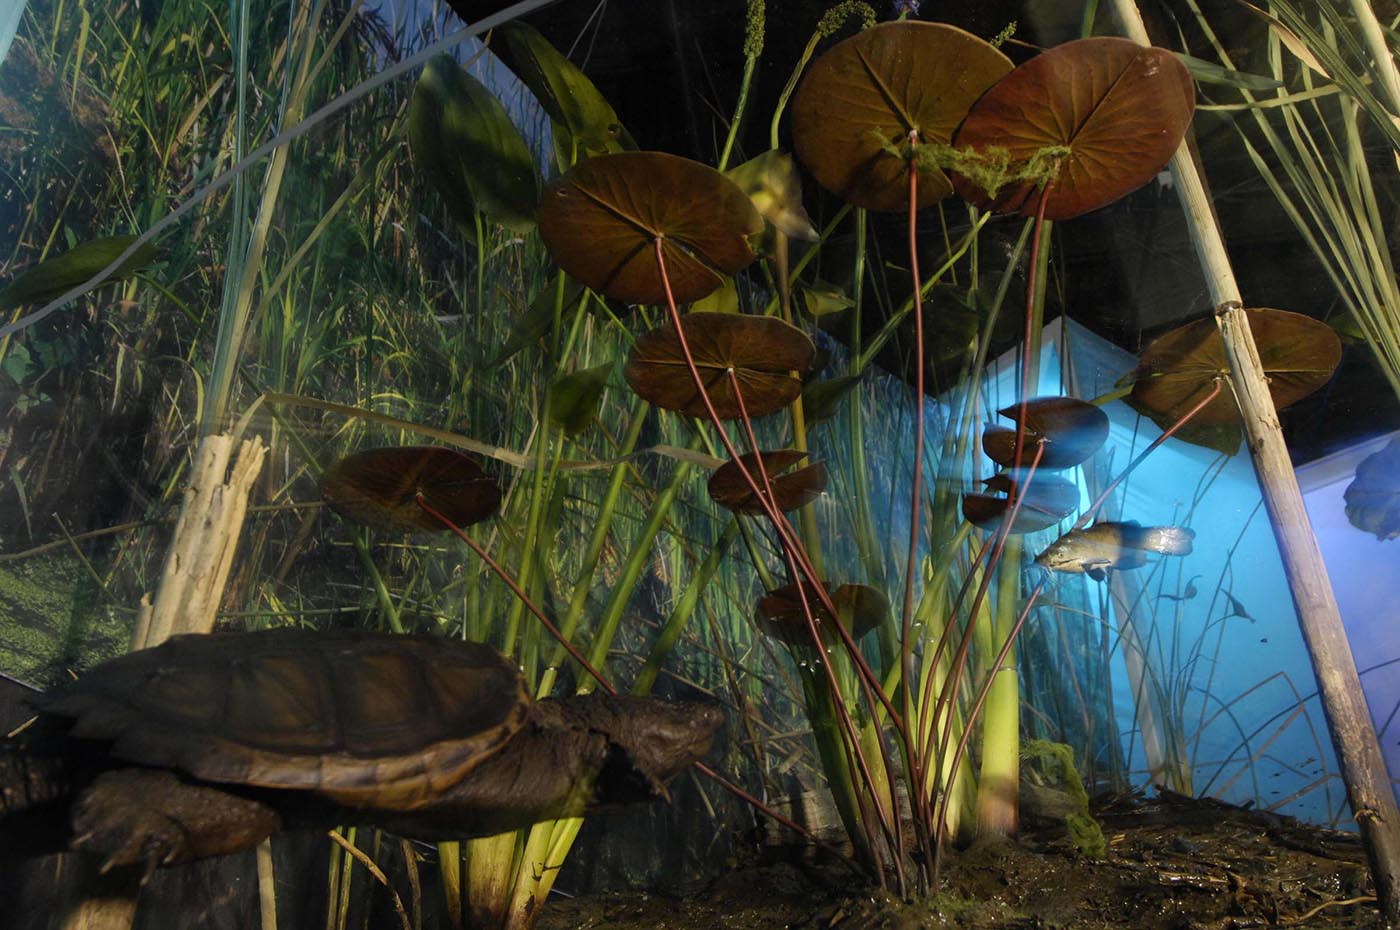 Diorama showing a turtle and fish swimming among water lilies and grasses.